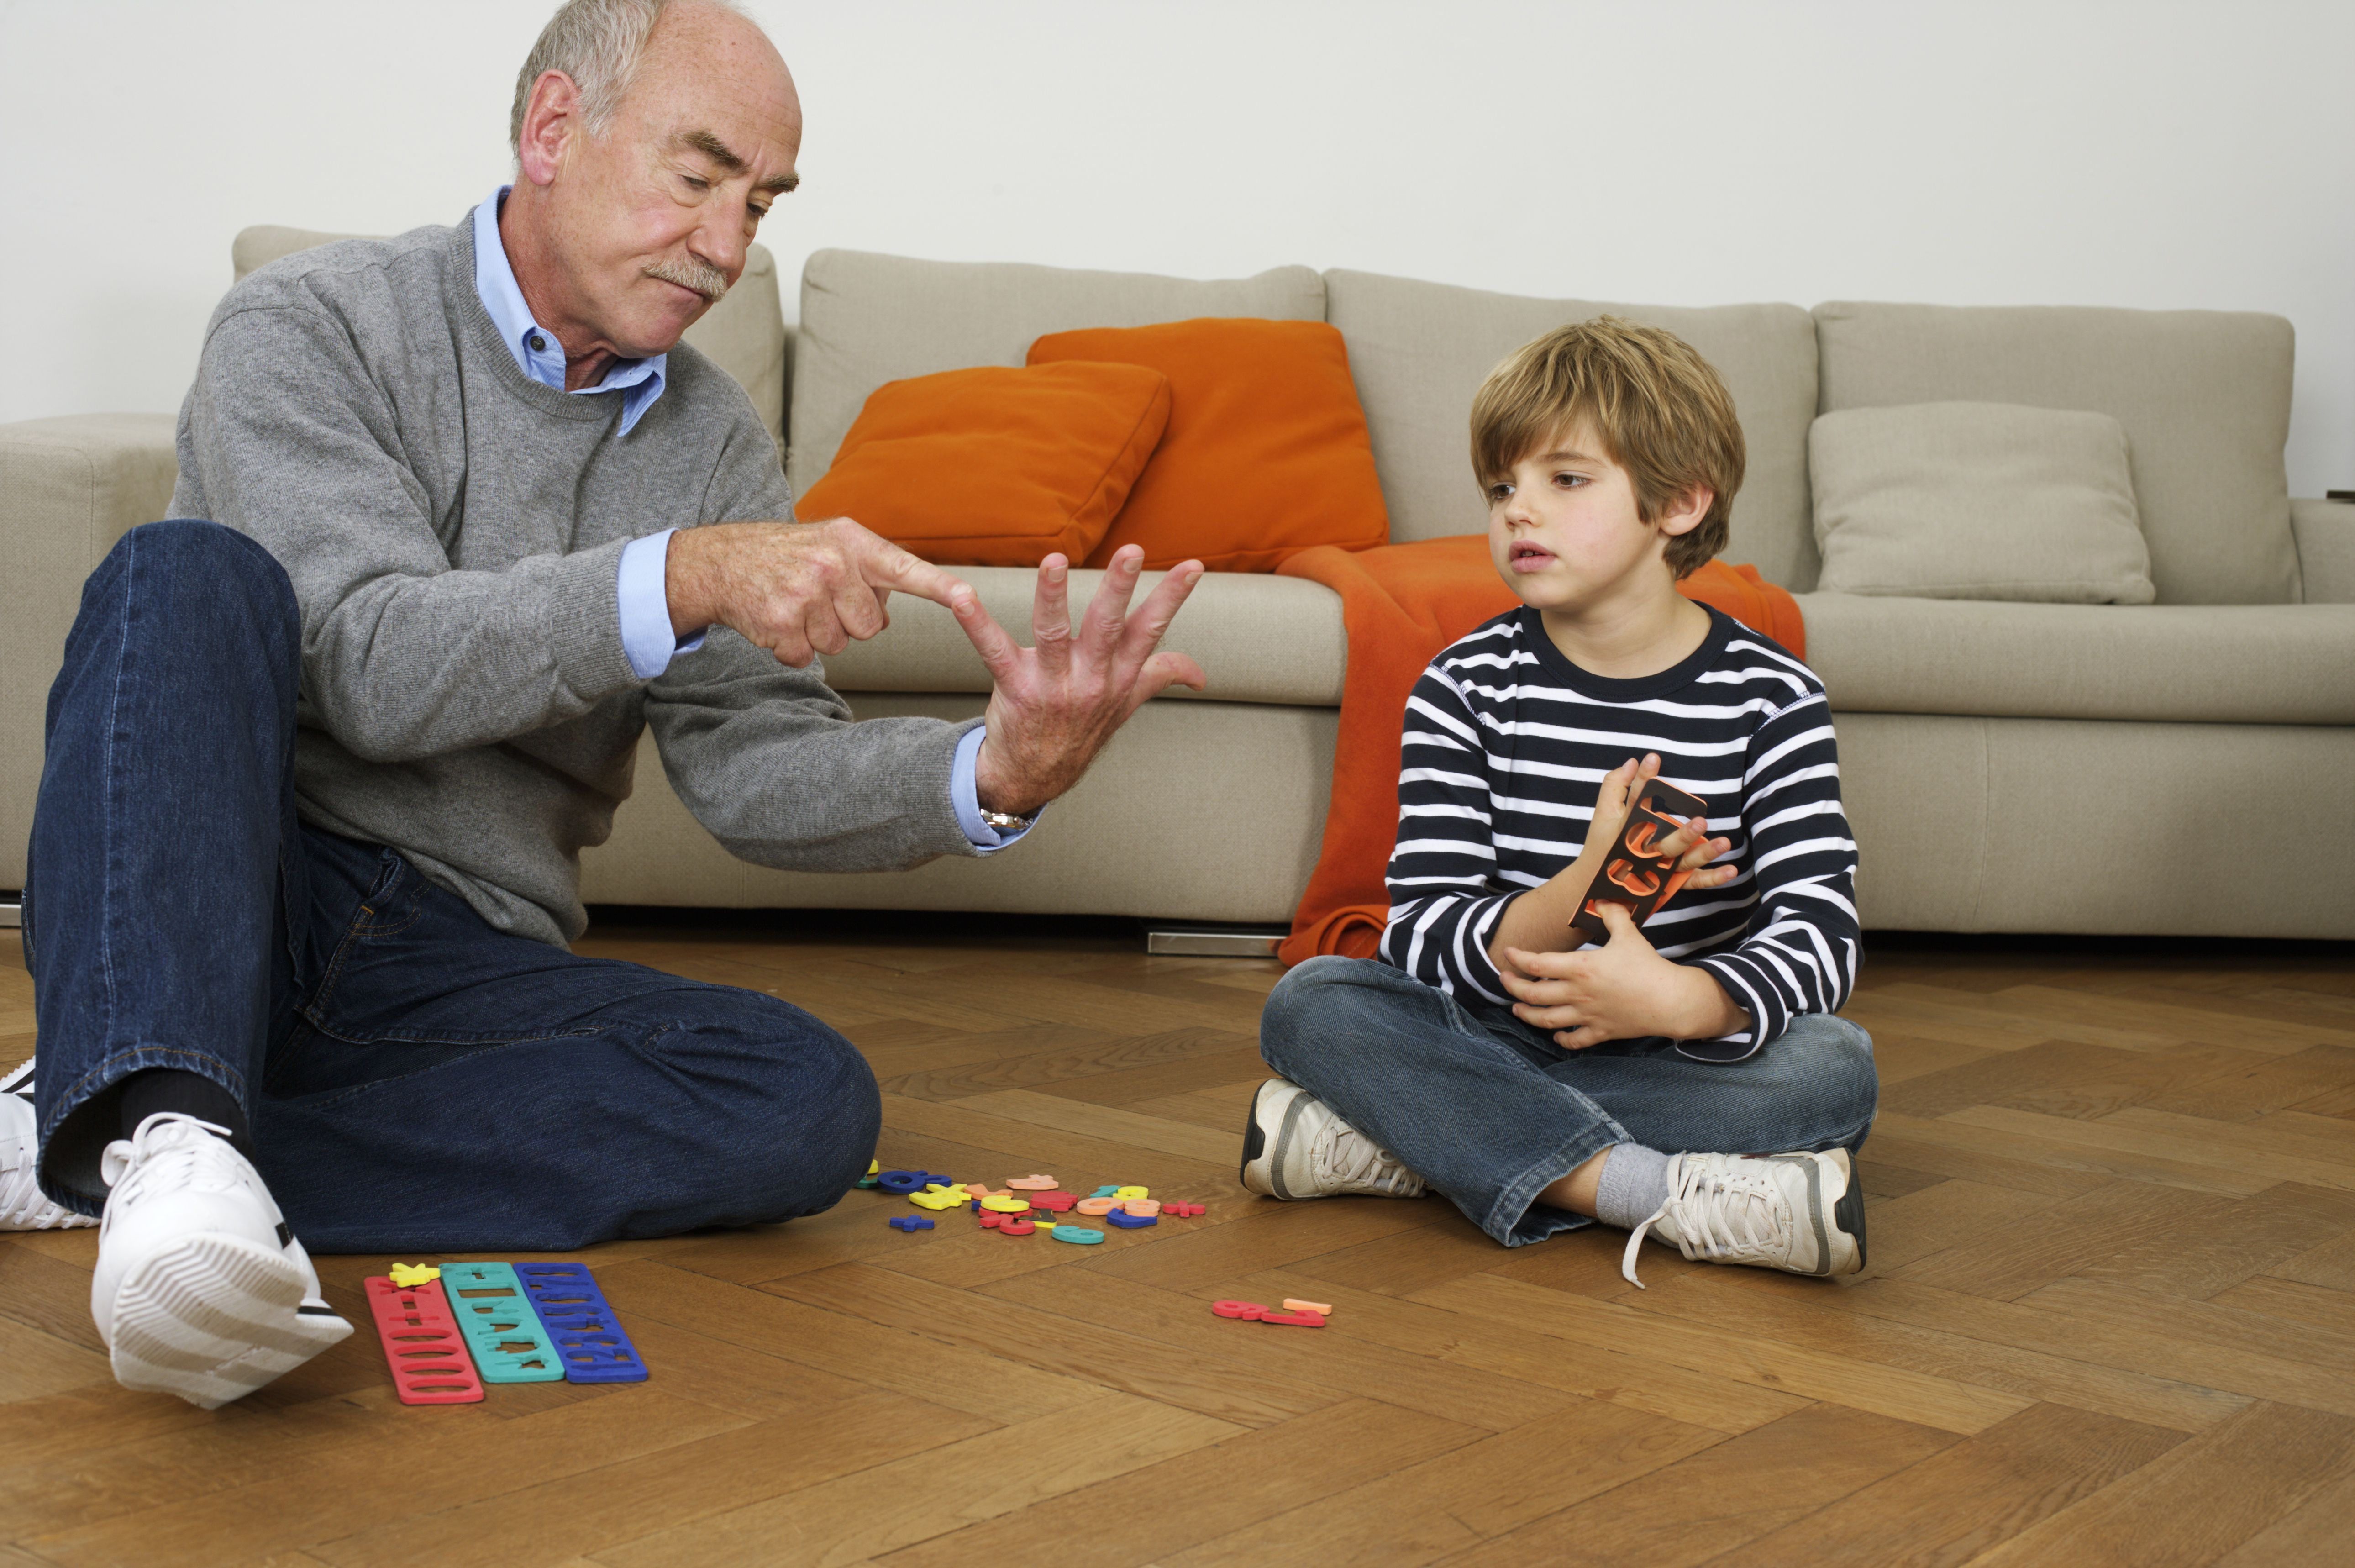 Grandfather and grandson (6 years) playing on floor